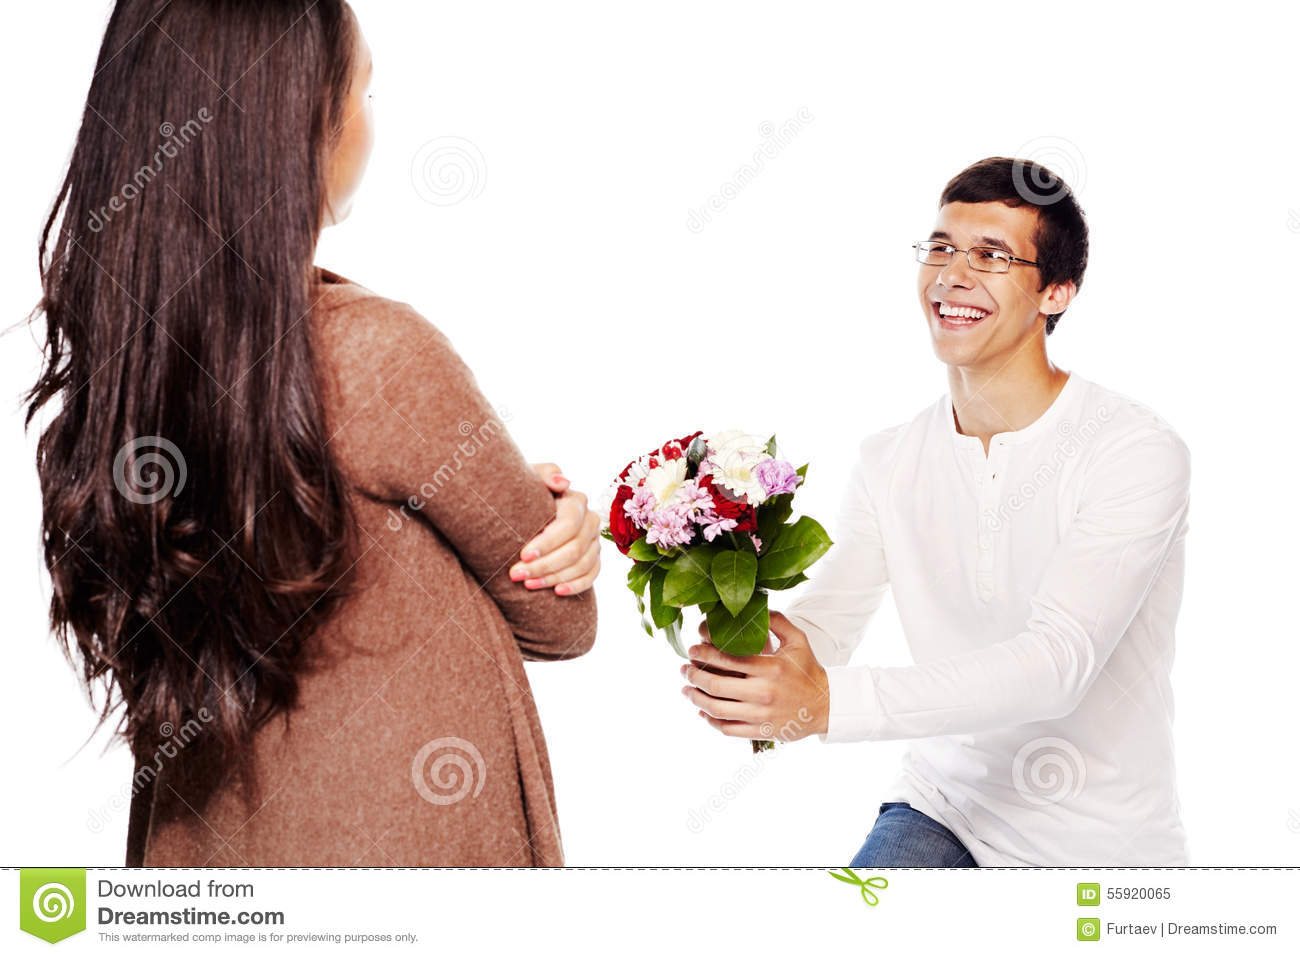 Guy Gives Flowers To Girl